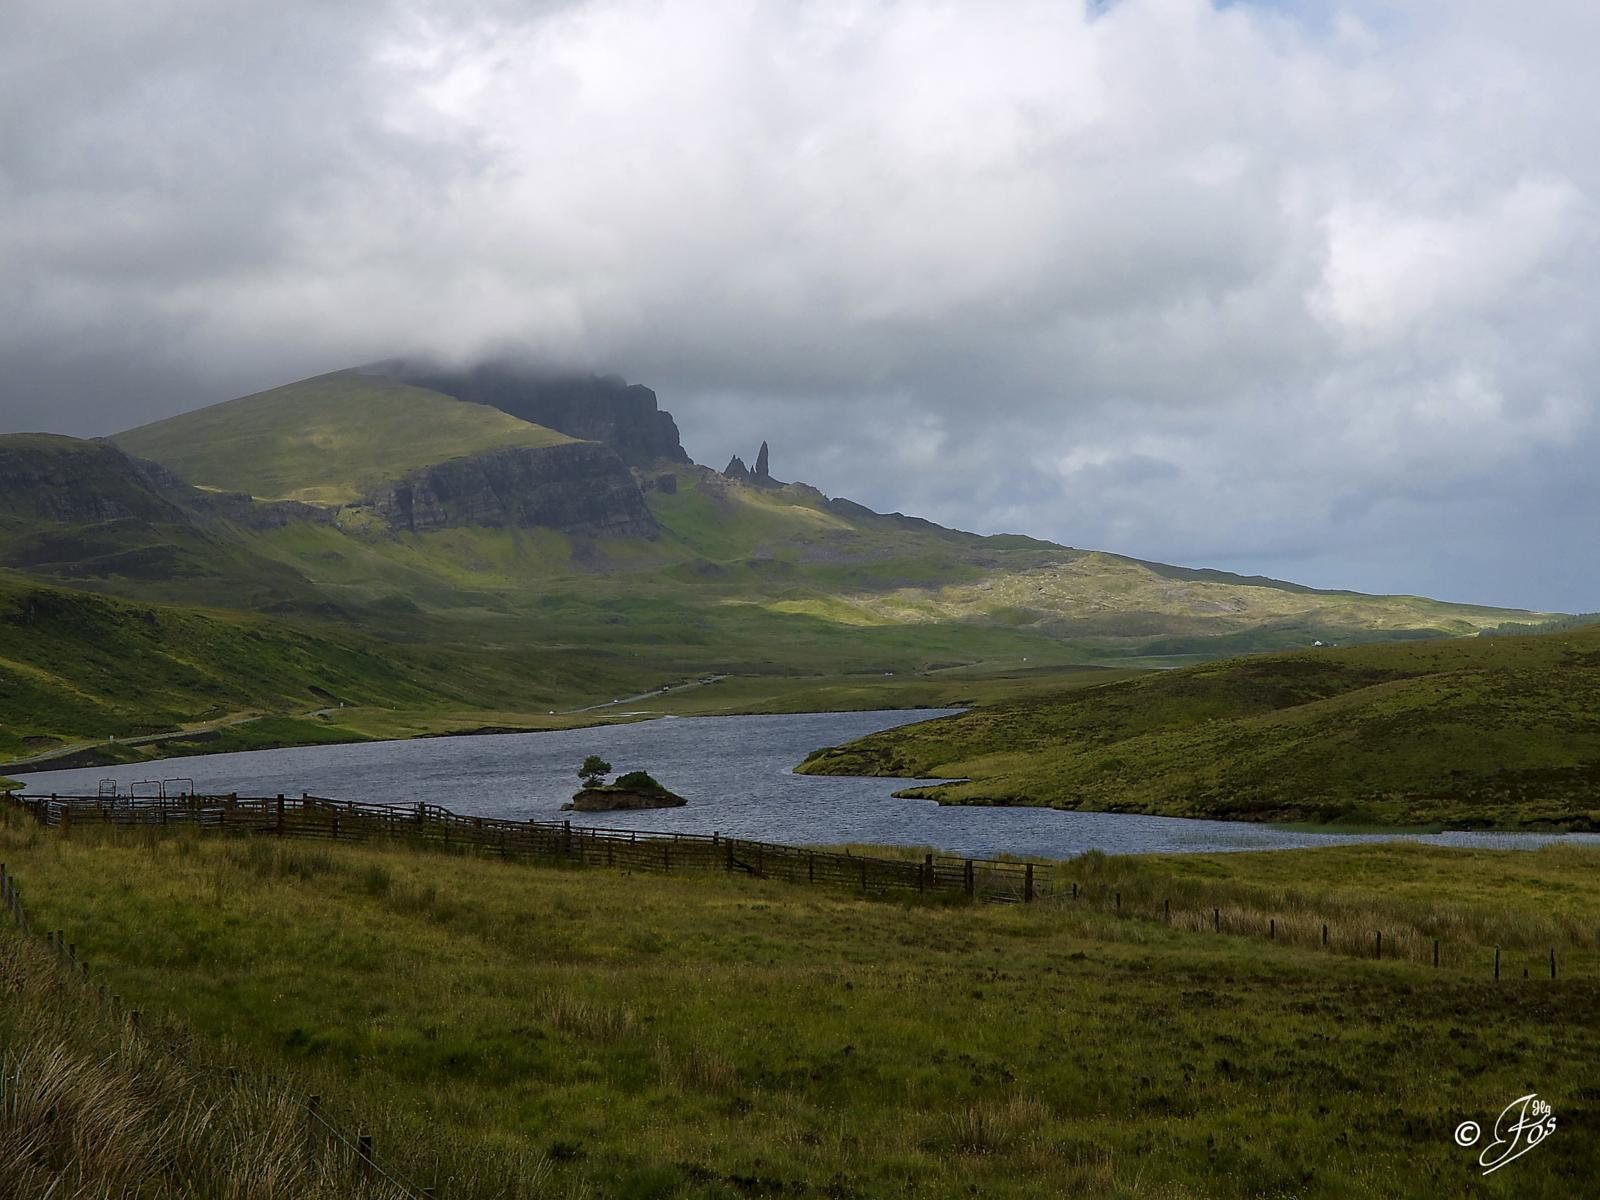 Bild av THE OLD MAN OF STORR, ISLA DE SKYE POR JLG FOS FILMS